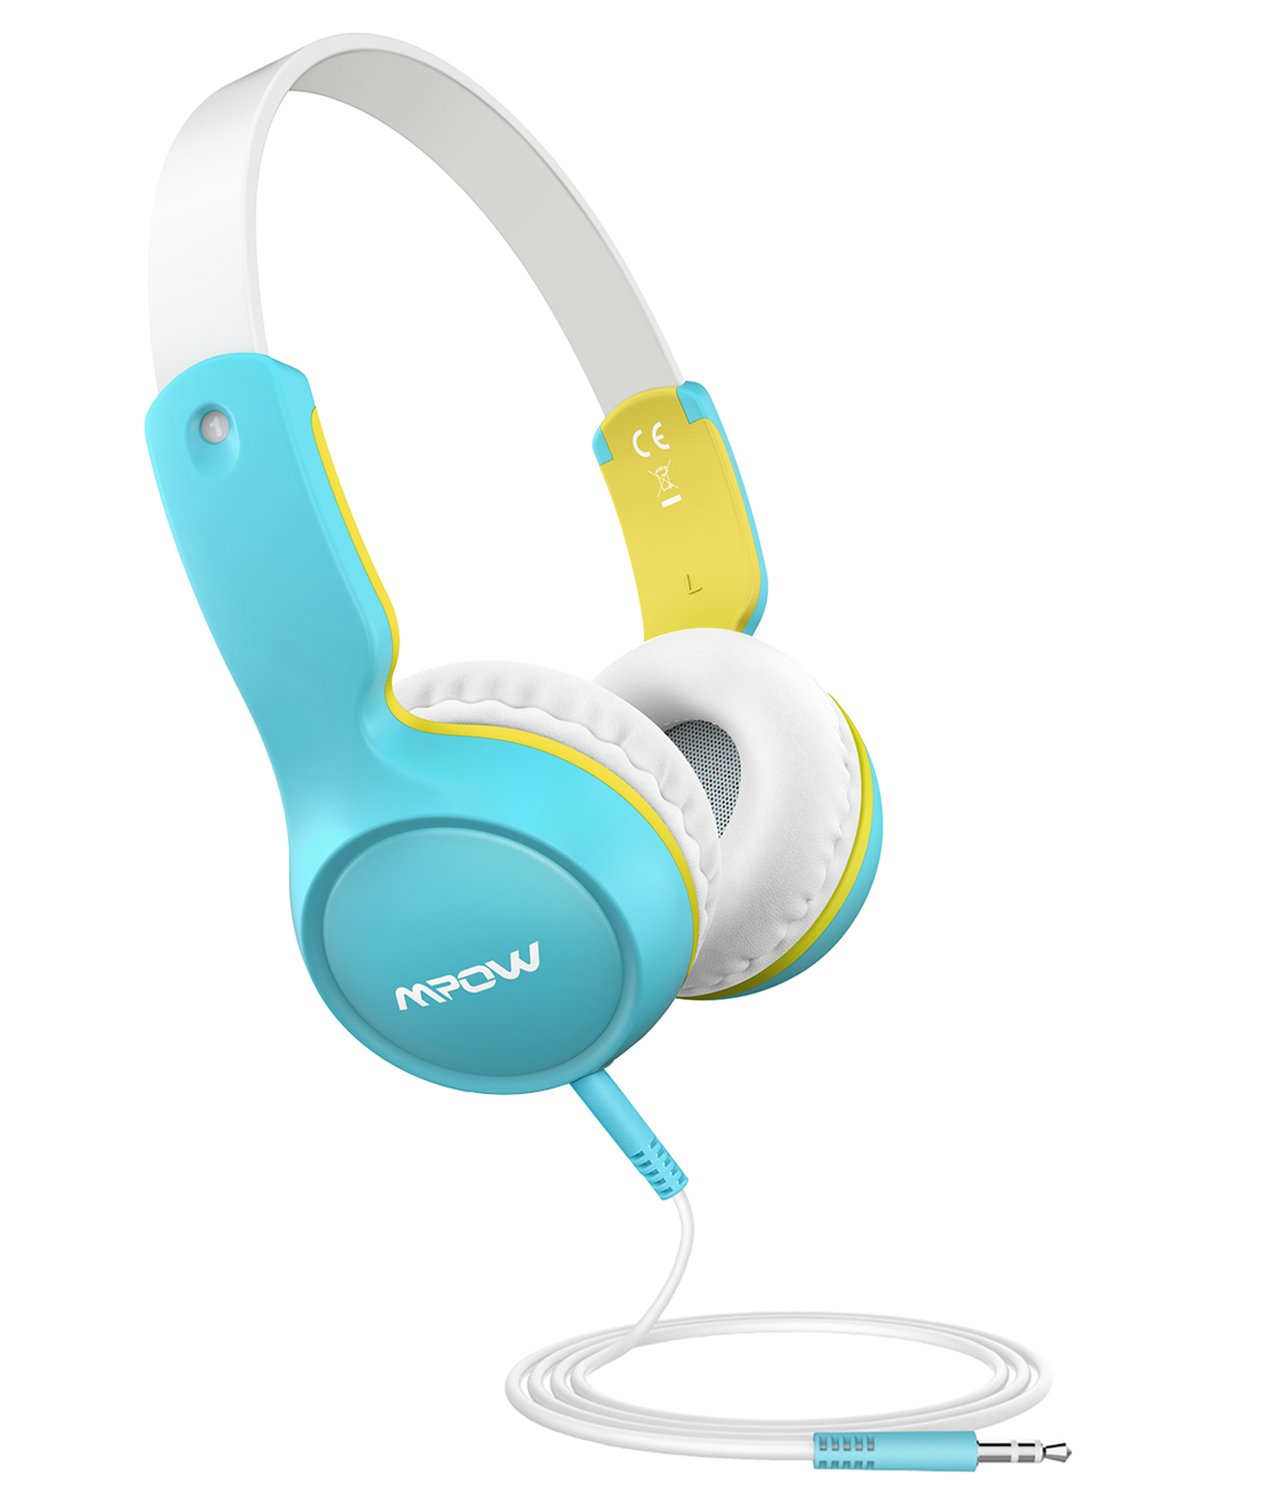 Mpow Kids Headphones, Wired On-Ear Headphone, 3-level Volume Control & 85dB Volume Limited for Protection, Comfy Design, 3.5mm Audio Jack, Safe Food Grade Material, Children Headphones for Kids